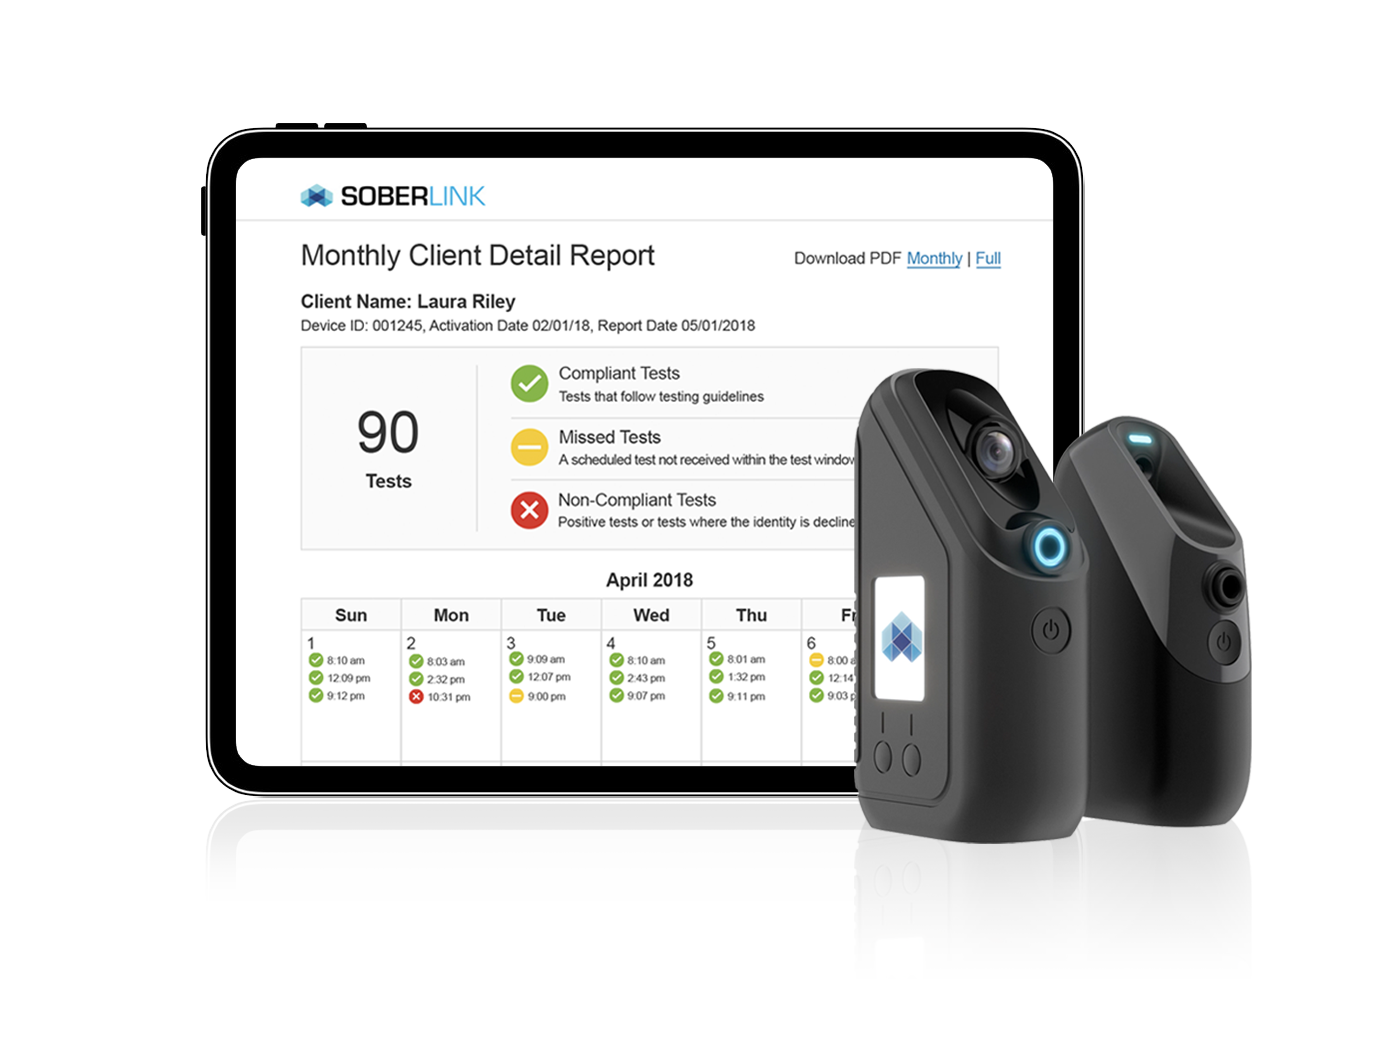 Monthly Client Report of the Connect Device